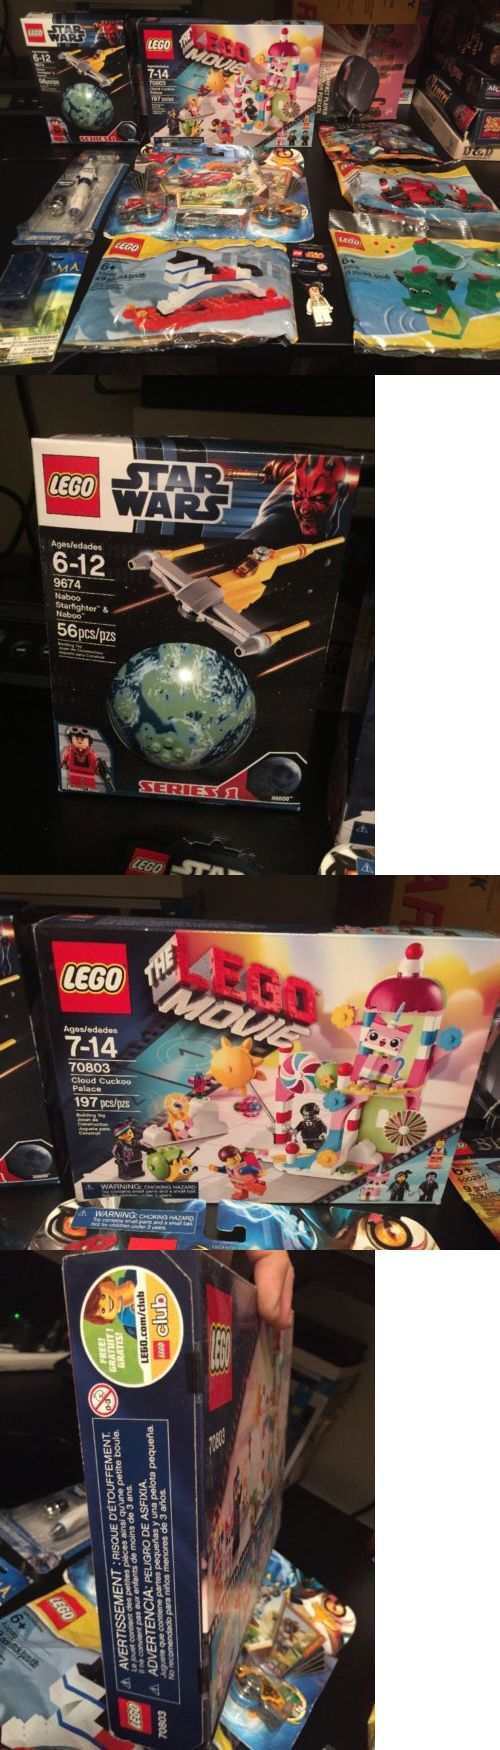 Bricks and Building Pieces 183448: New Sealed Lego Movie Star Wars Mixed Lot Chima Bionicle Bags Pen Keychain 100$+ -> BUY IT NOW ONLY: $54.99 on eBay!